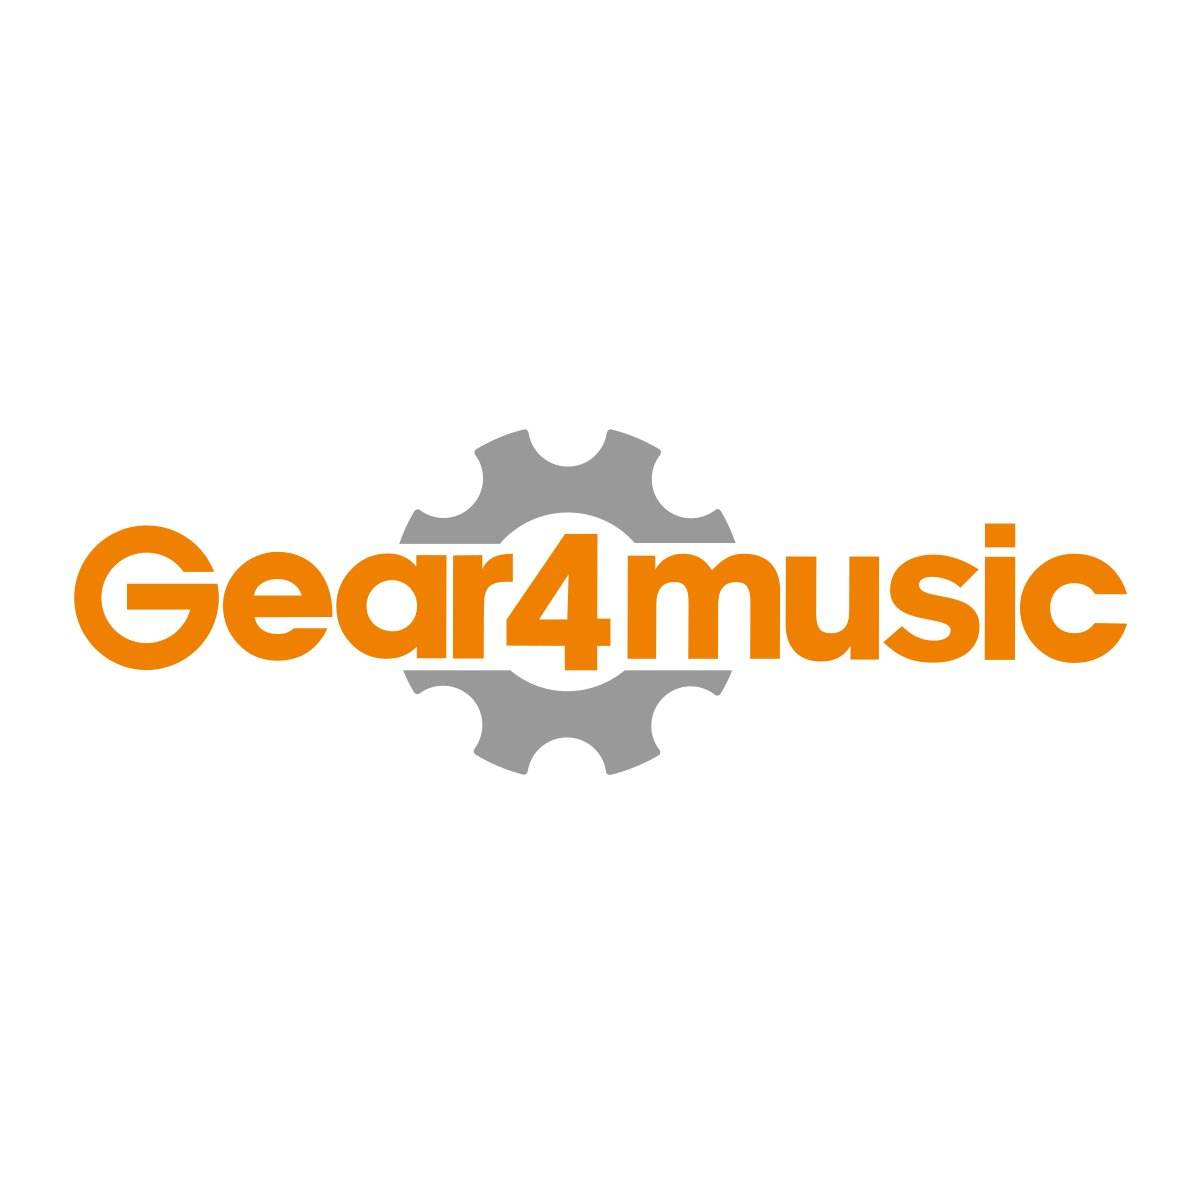 Deluxe Dwarsfluit van Gear4music